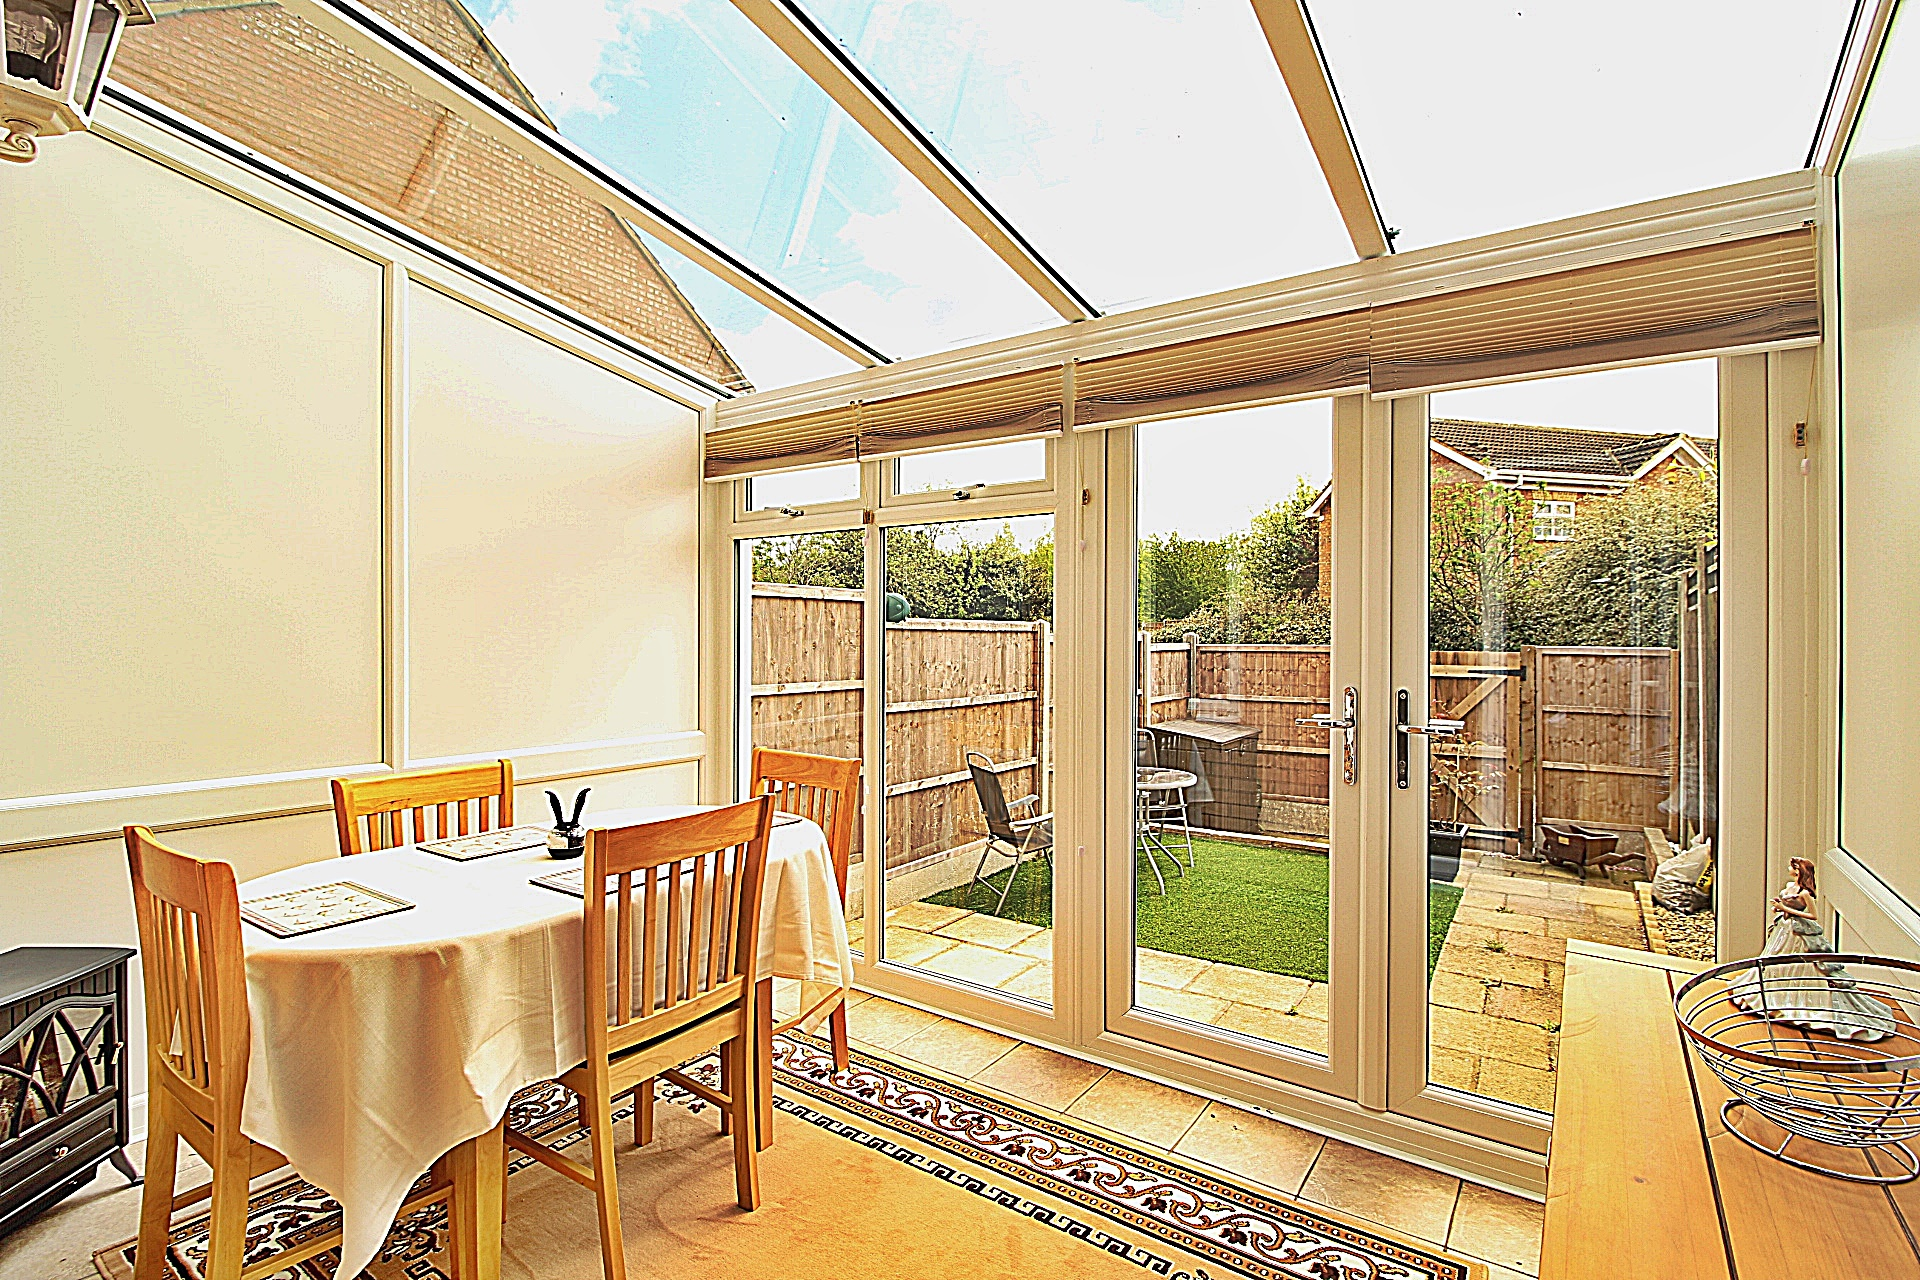 2 bedroom end of terrace house for sale in biggleswade for How much is a bathroom worth on an appraisal